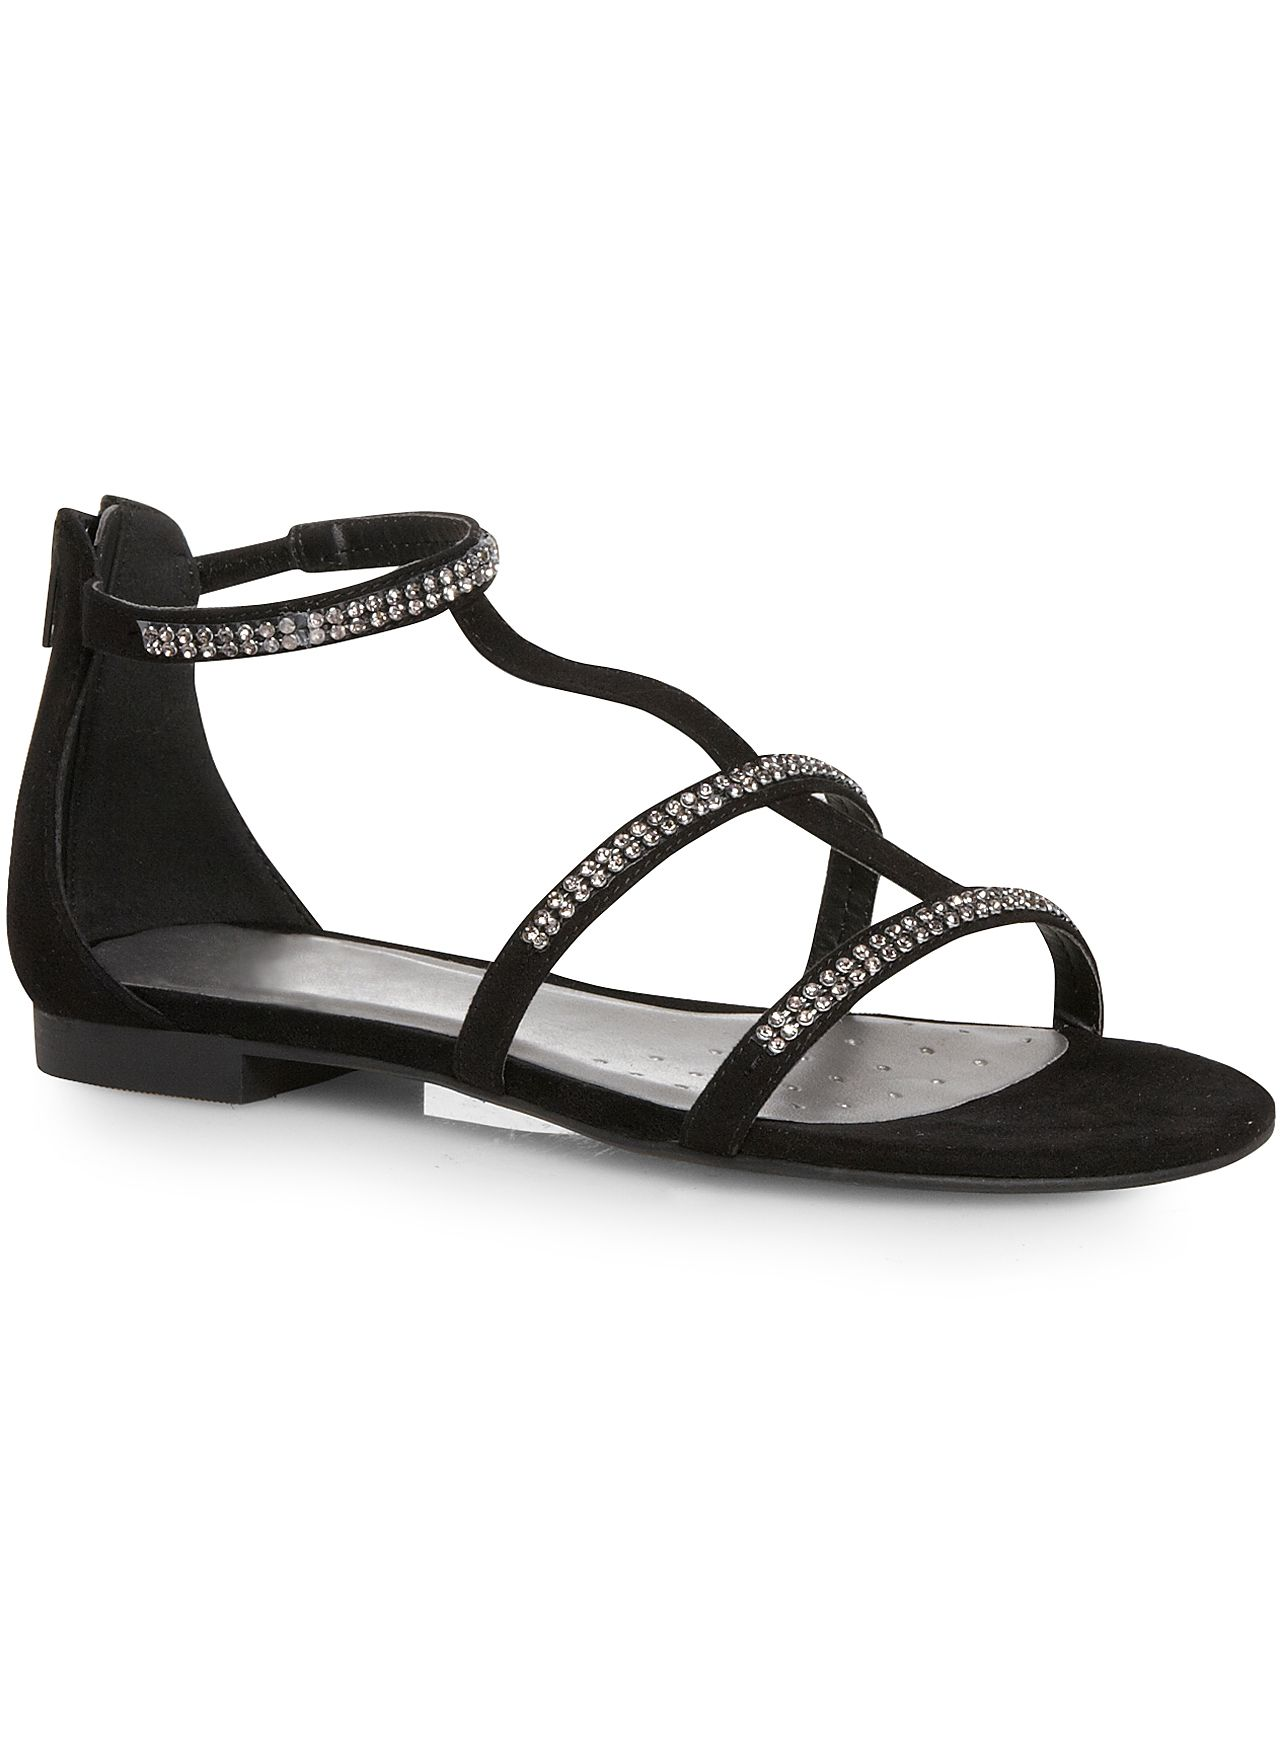 Black Diamante H-Bar Sandal